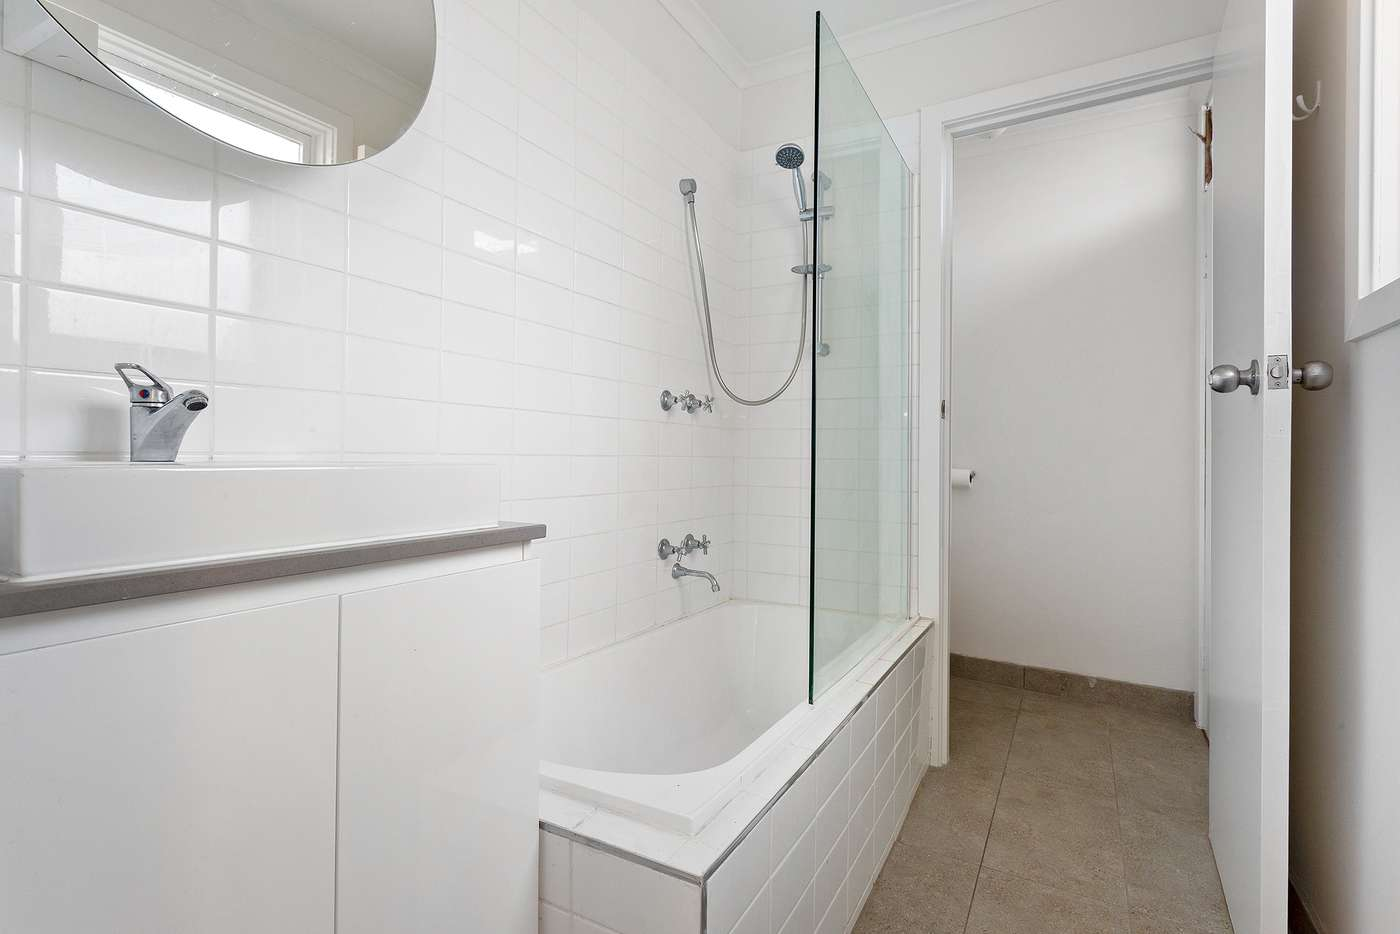 Sixth view of Homely house listing, 67 Church Street, Richmond VIC 3121